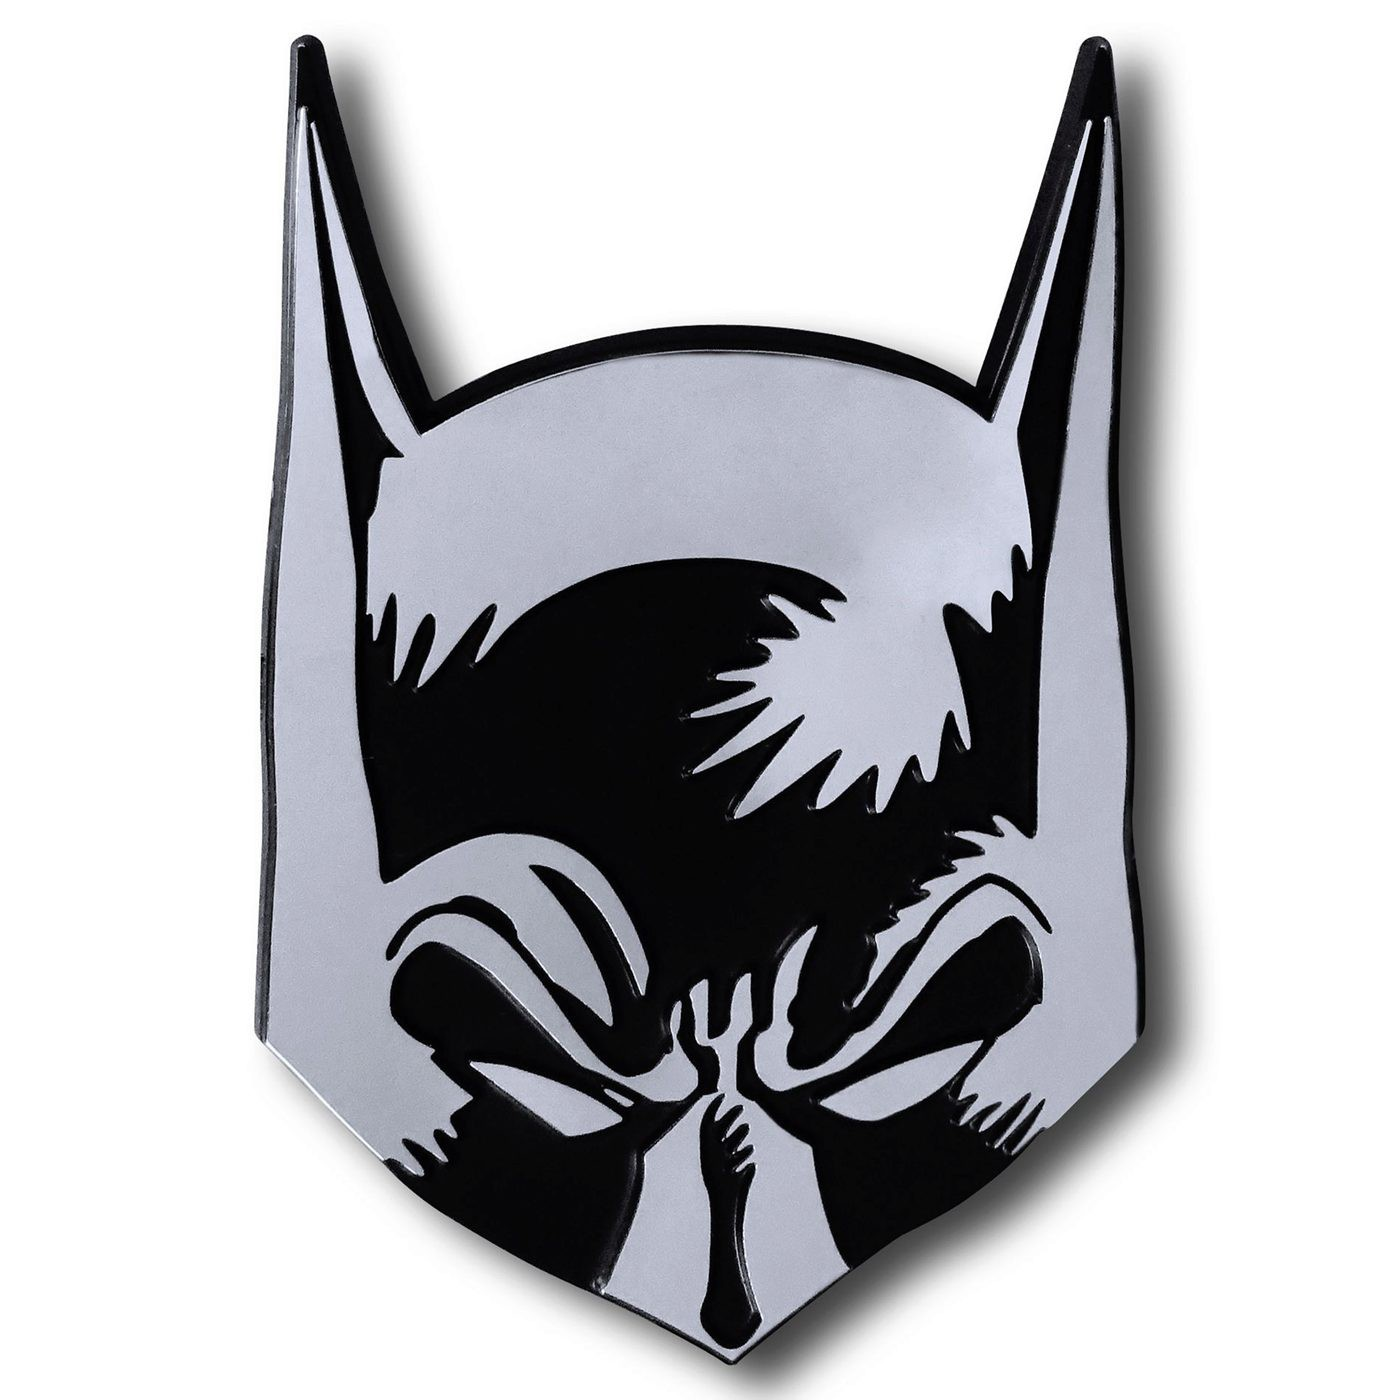 Batman Cowl 3D Plastic Car Emblem